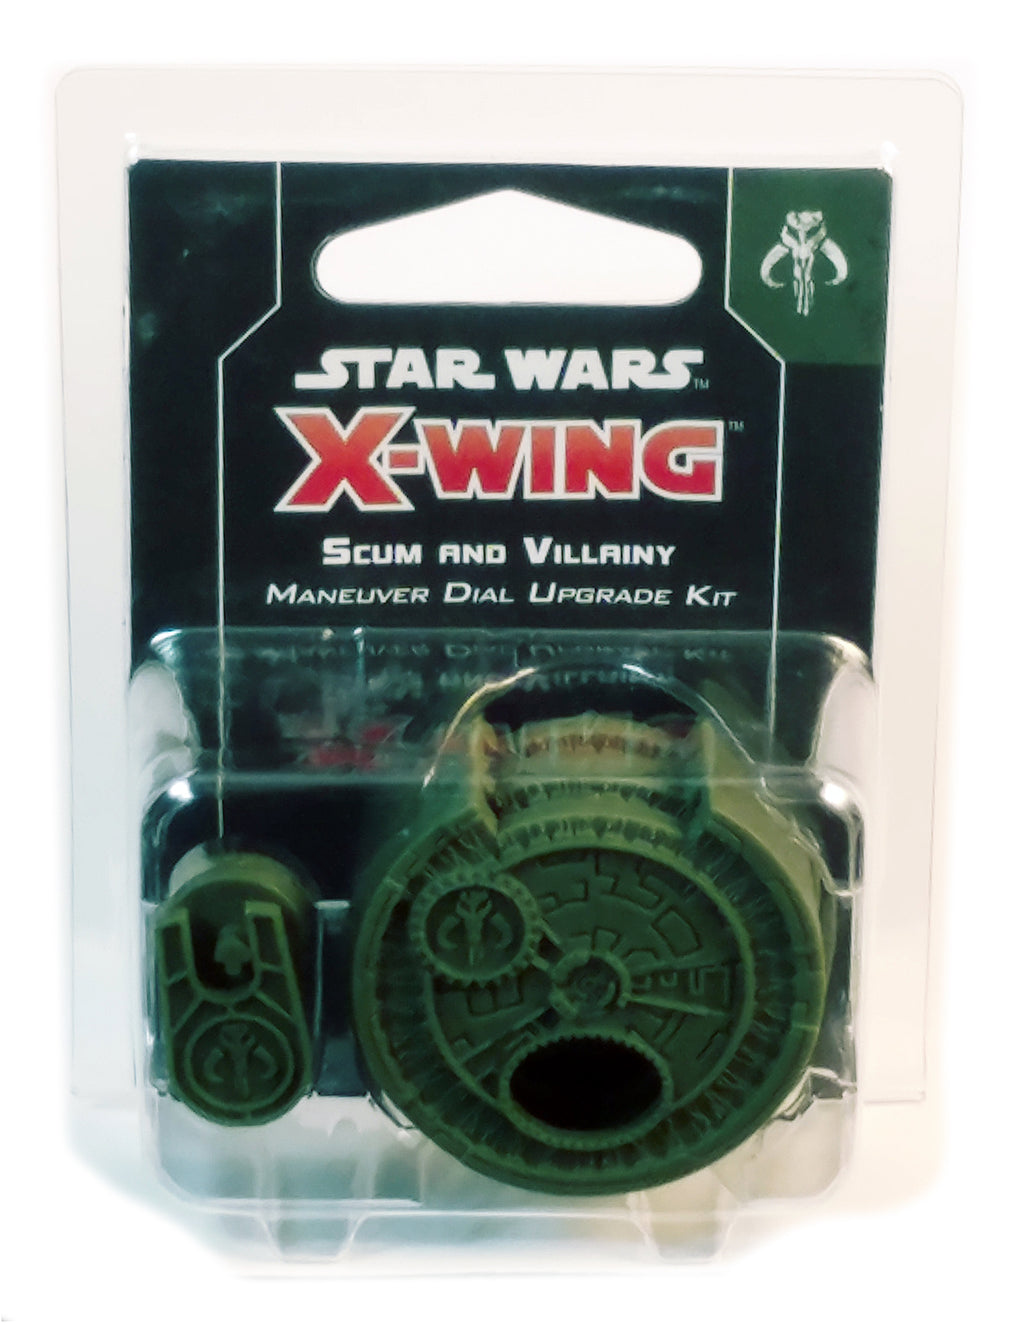 Star Wars X-Wing 2.0 Scum and Villainy Maneuver Dial upgrade Kit